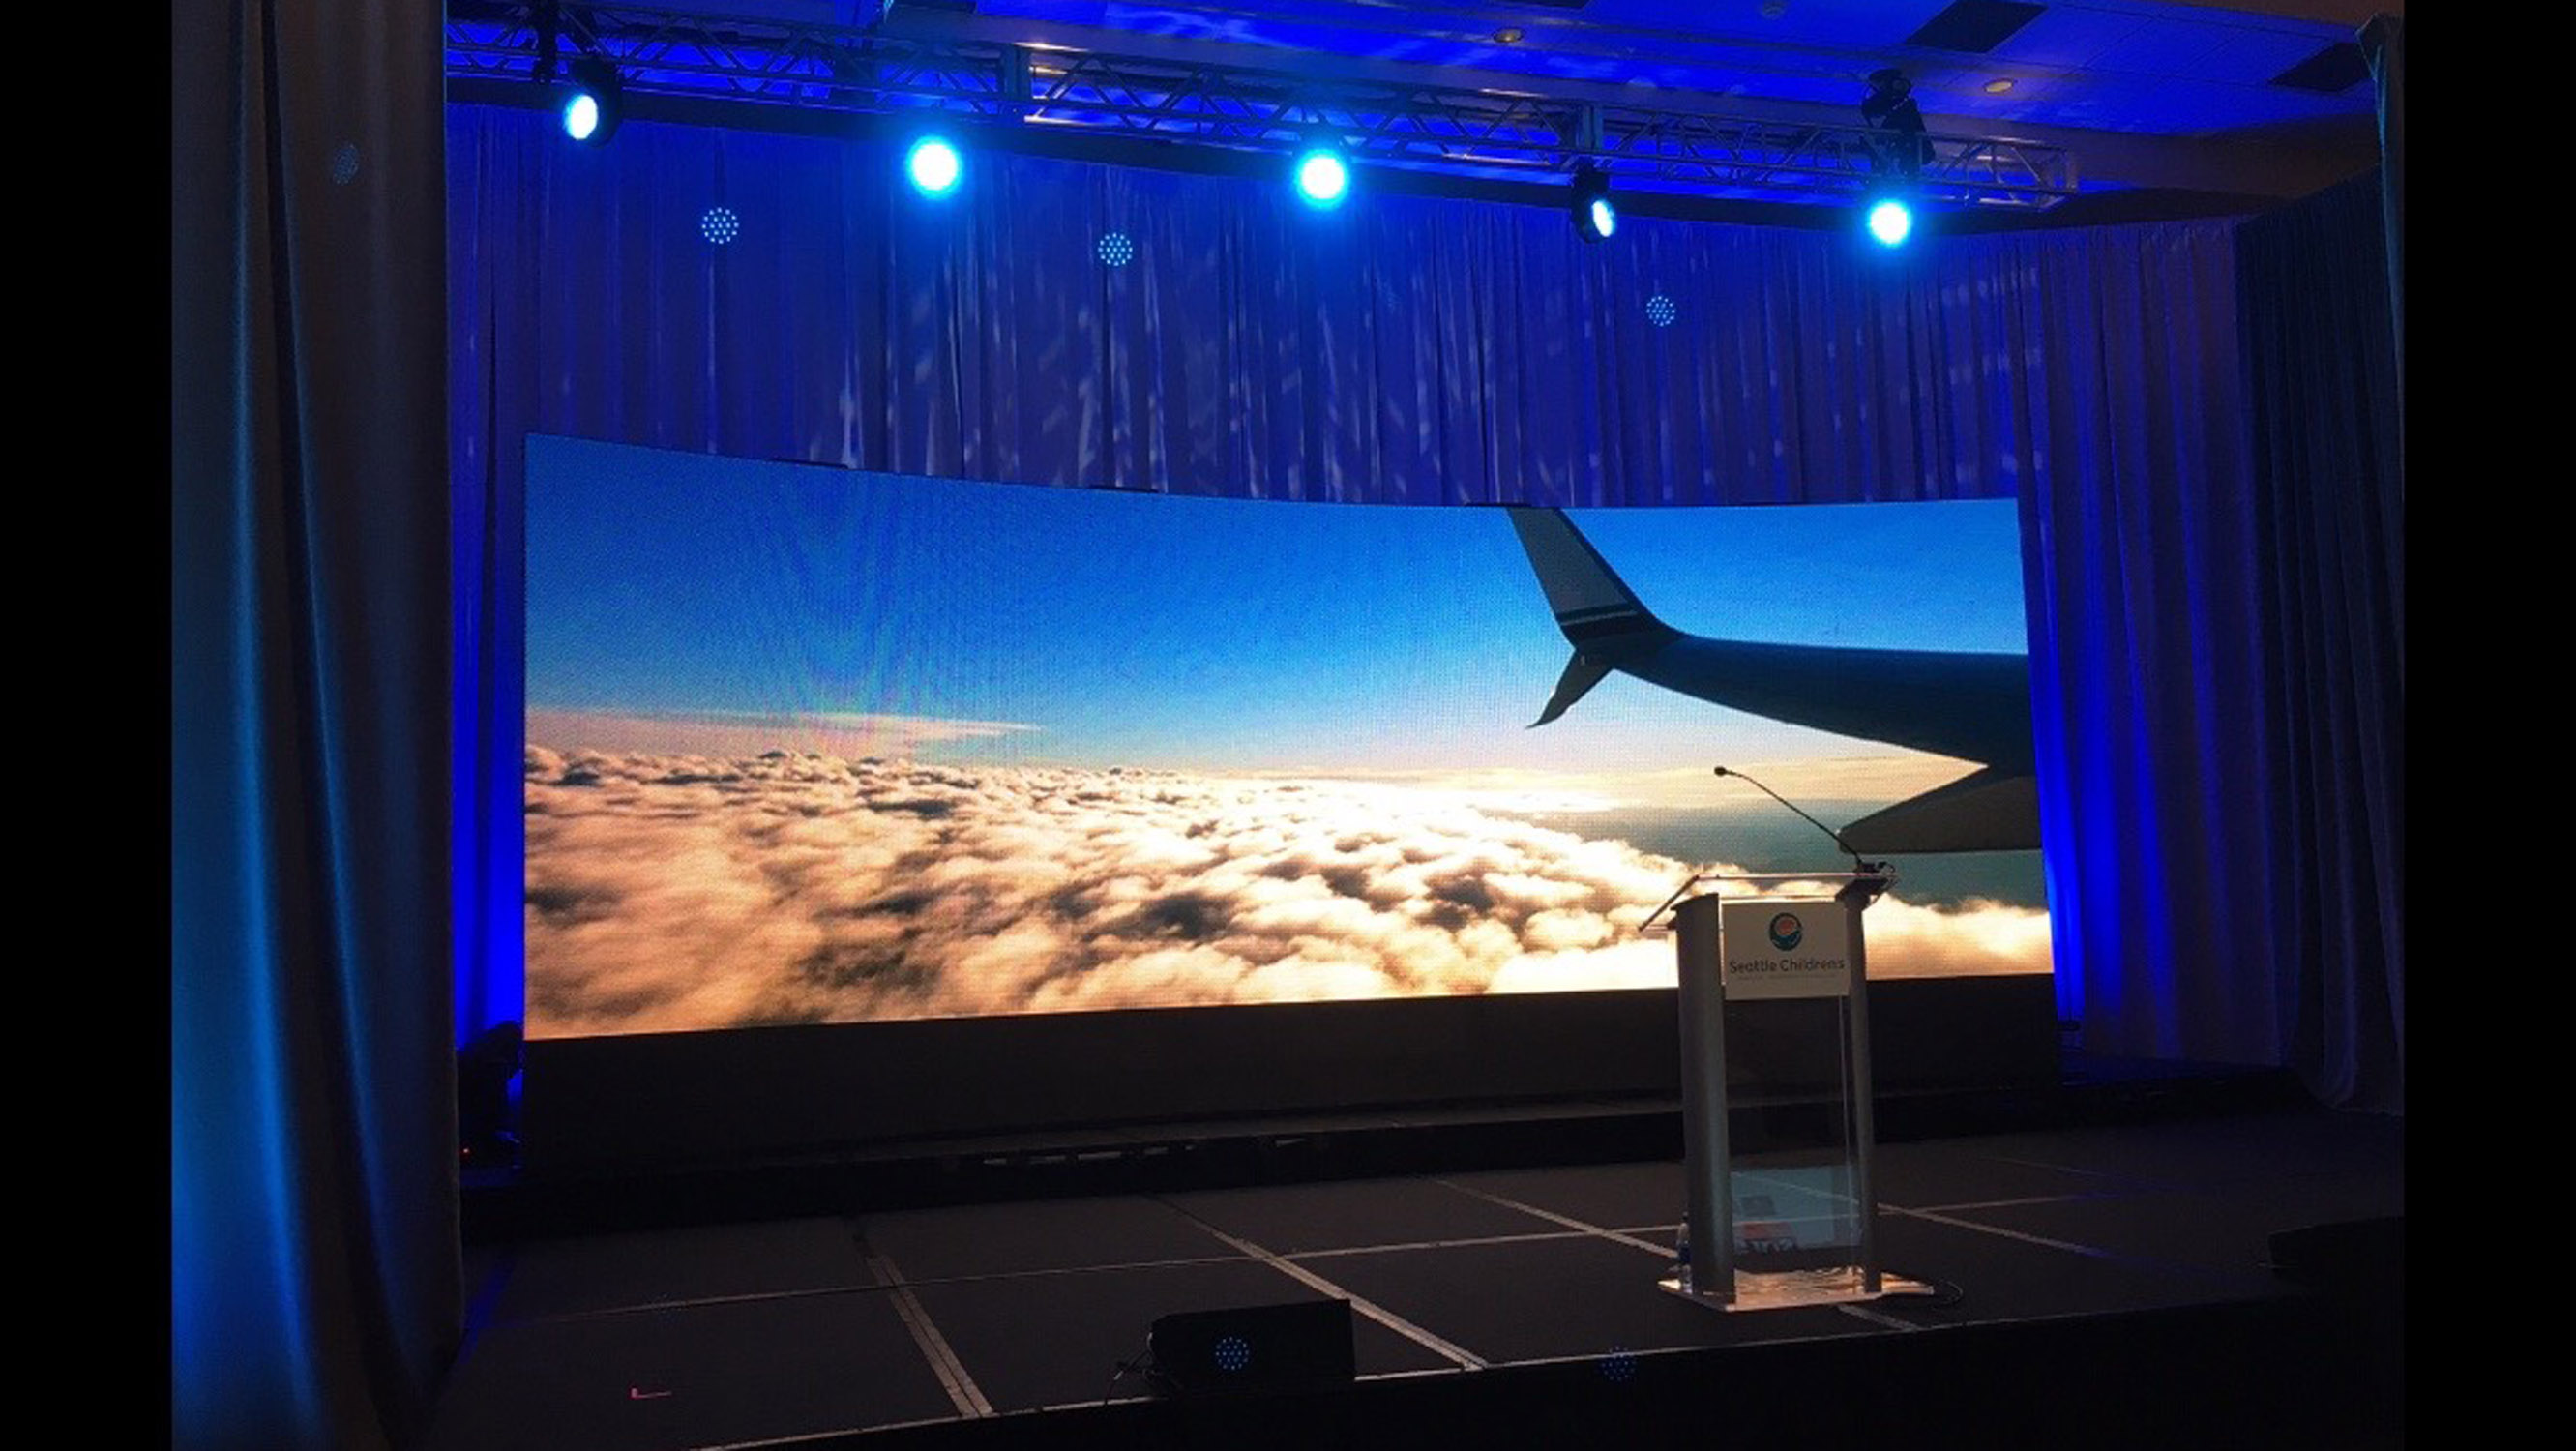 24' x 8.5' curved LED video wall